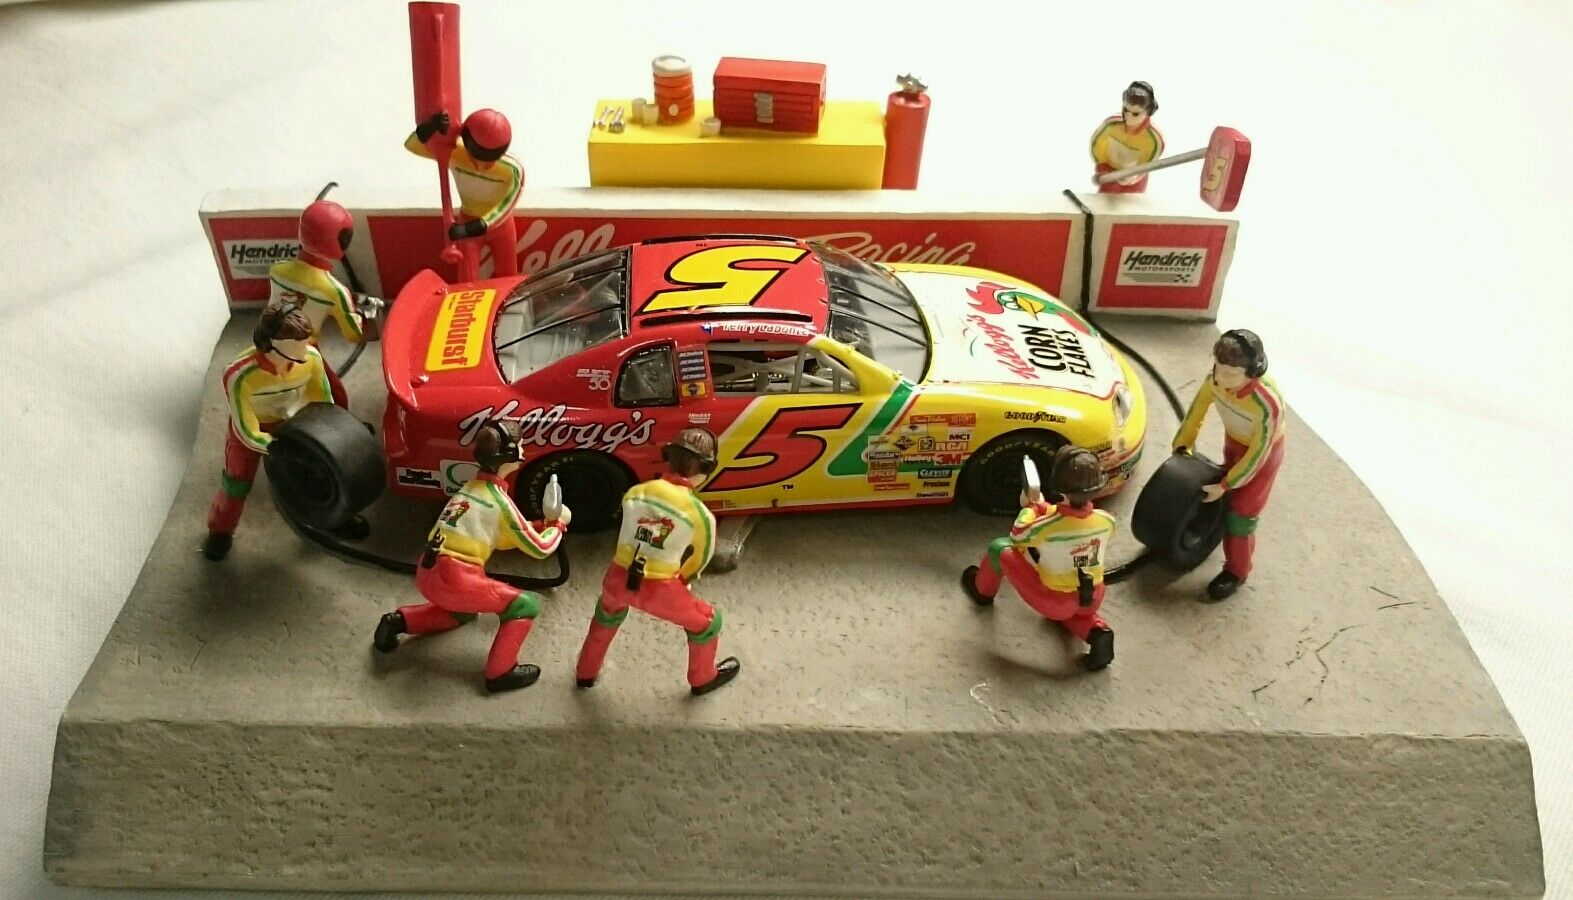 ERTL COLLECTIBLES AMERICAN MUSCLE RACING SERIES KELLOGG'S PIT STOP STOP STOP SCENE bad1a8